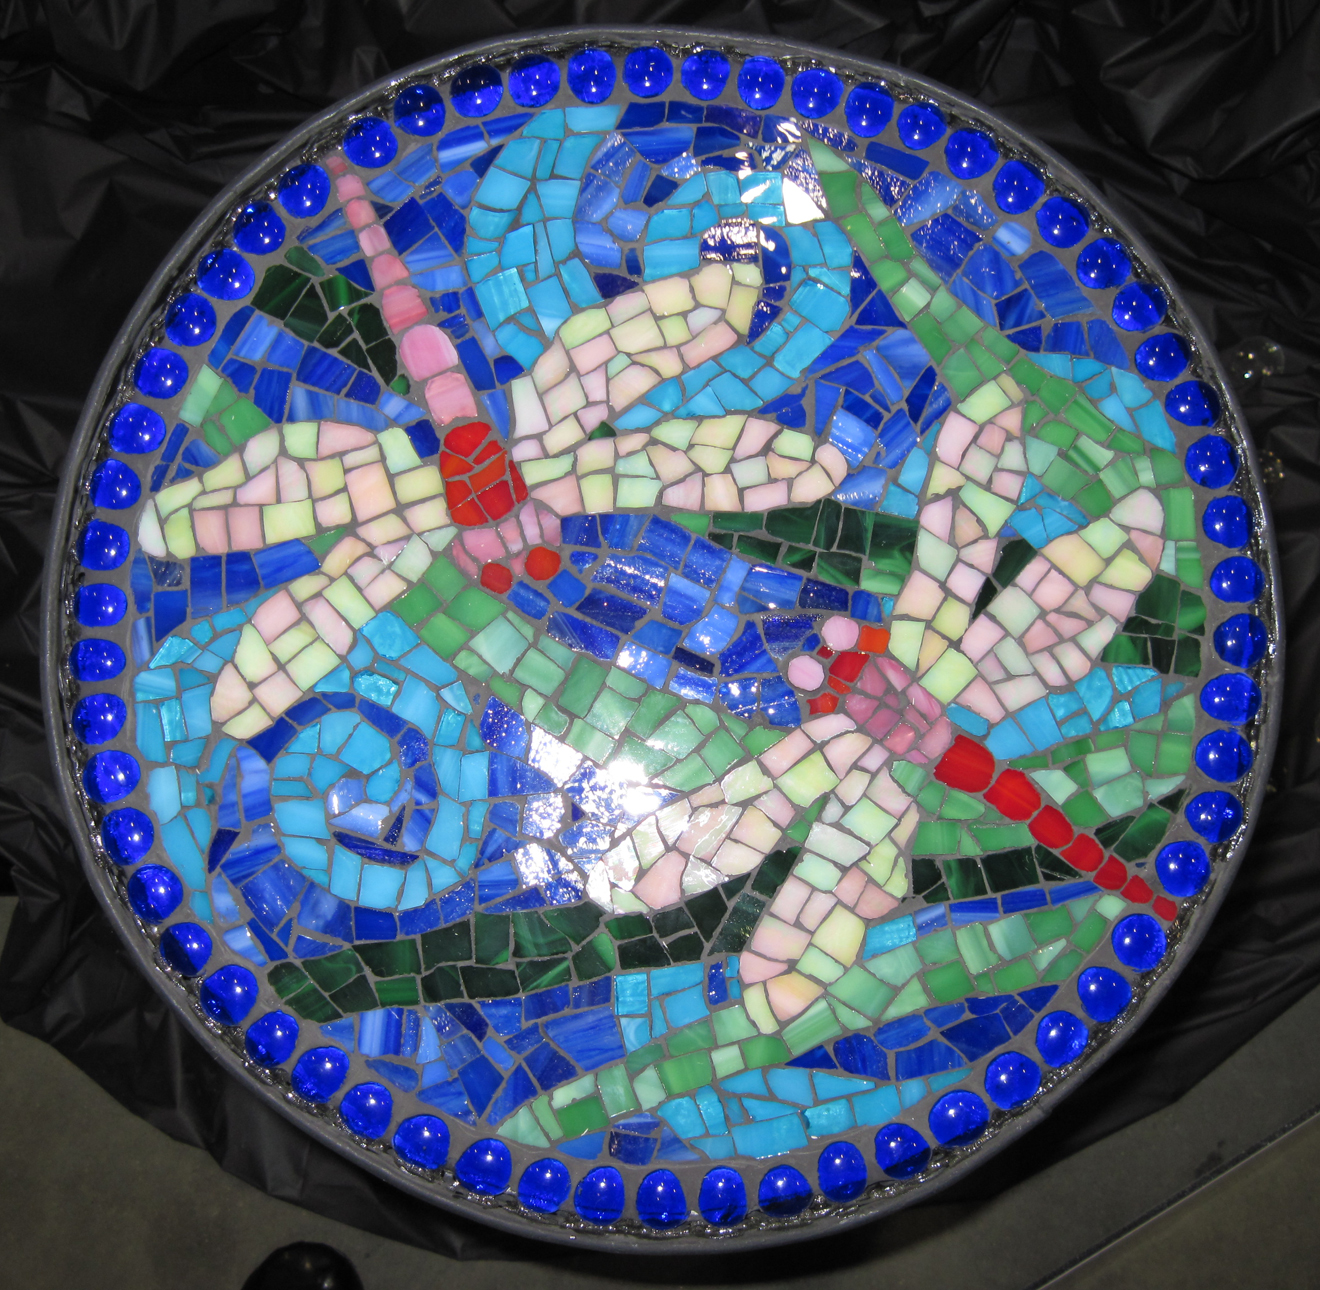 1000 images about mosaic dragonflies on pinterest for Garden mosaic designs